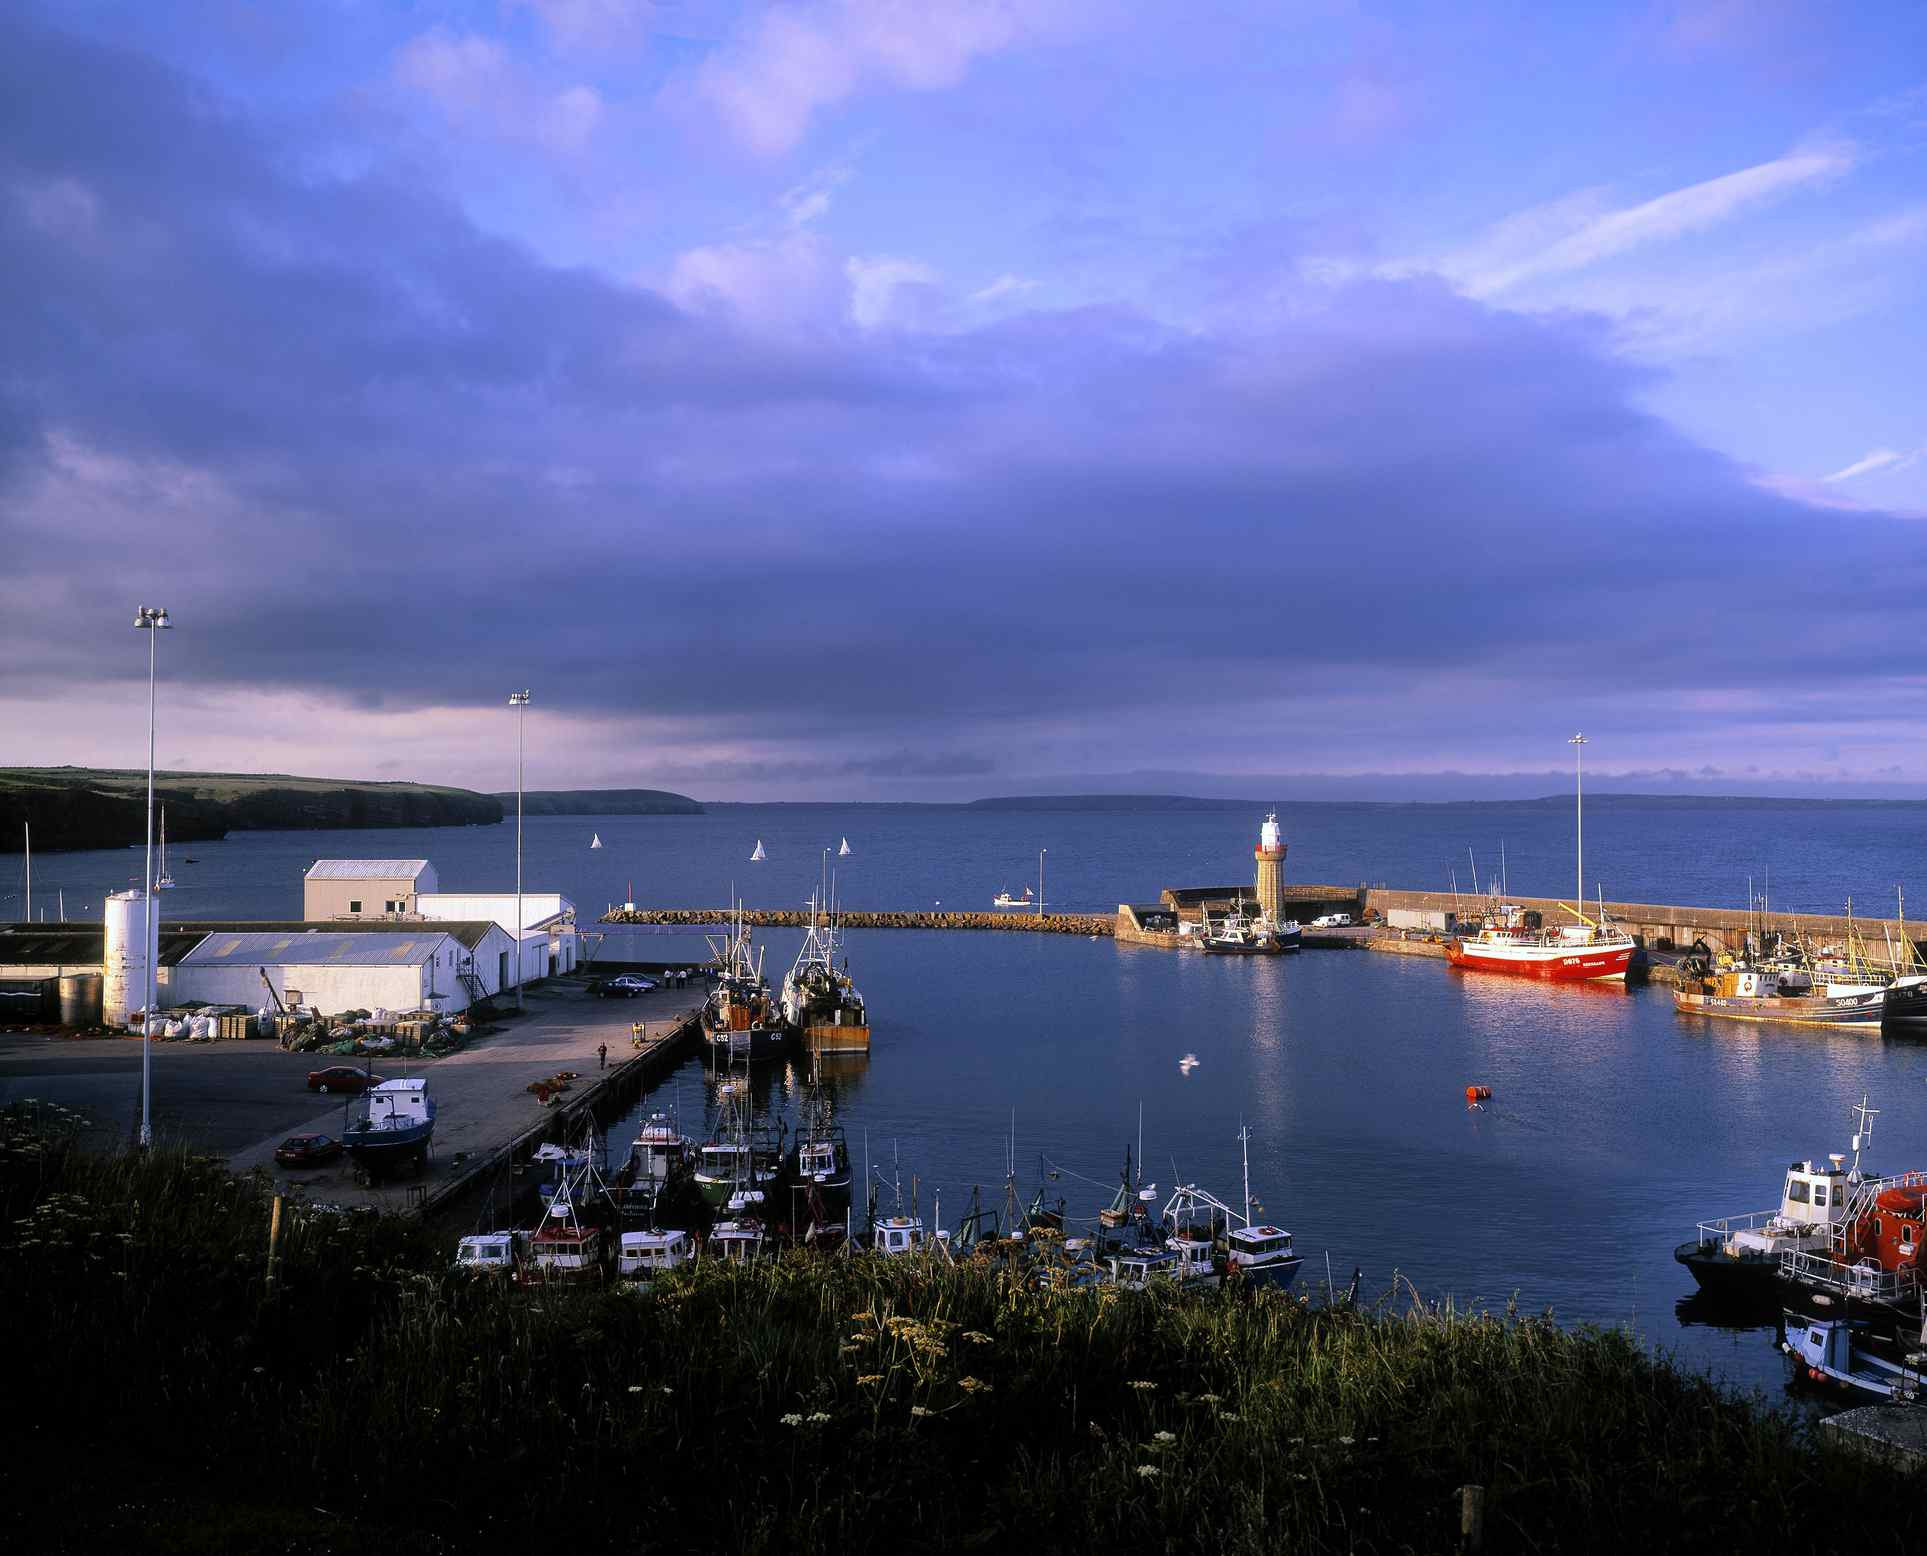 harbor of Dunmore East Waterford